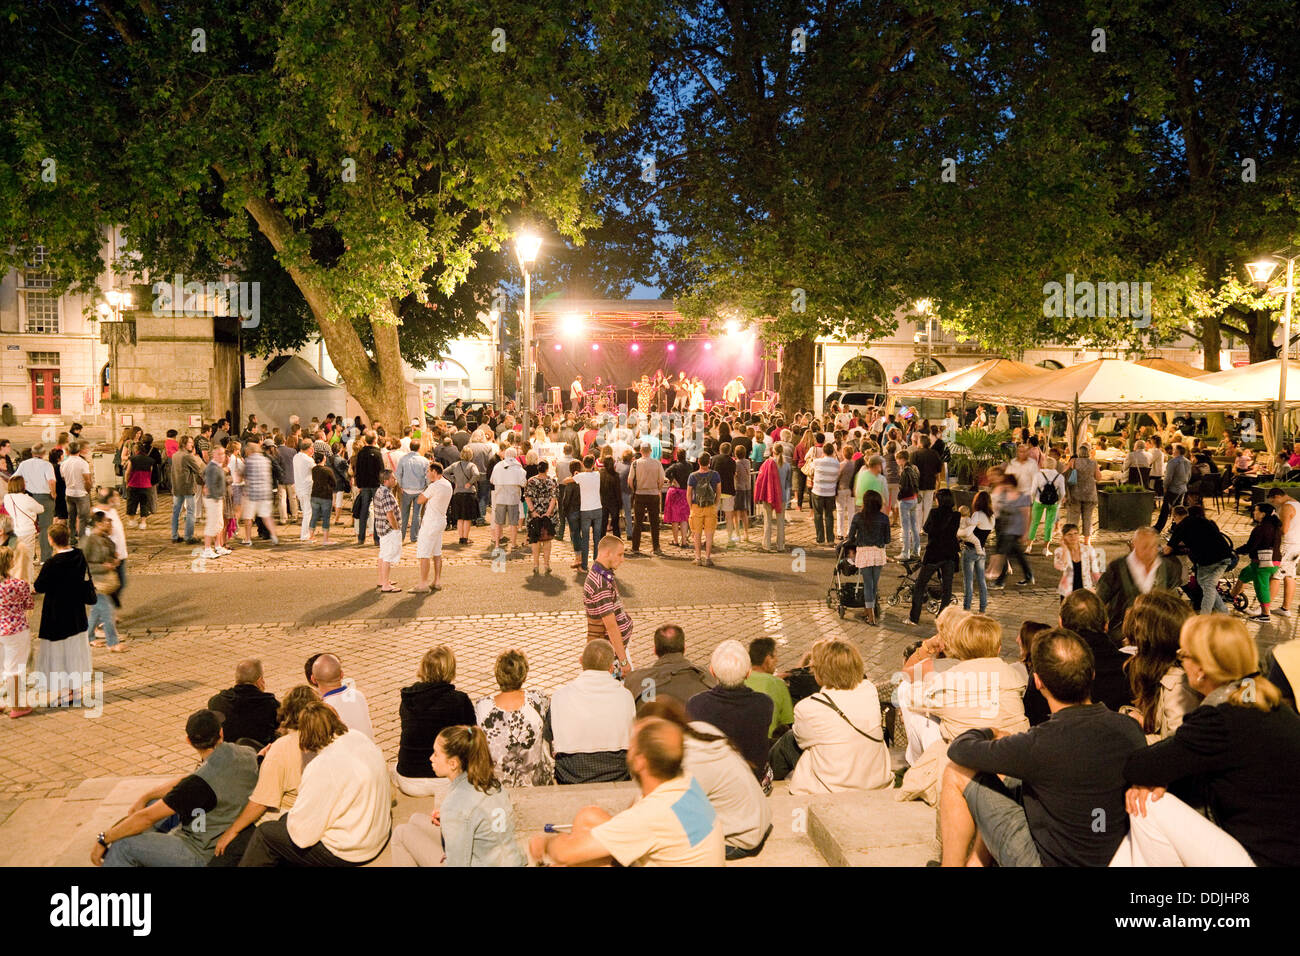 People listening to a concert in the town square at night, the town centre, Blois, Loir-et-Cher, Loire valley, France, Europe - Stock Image